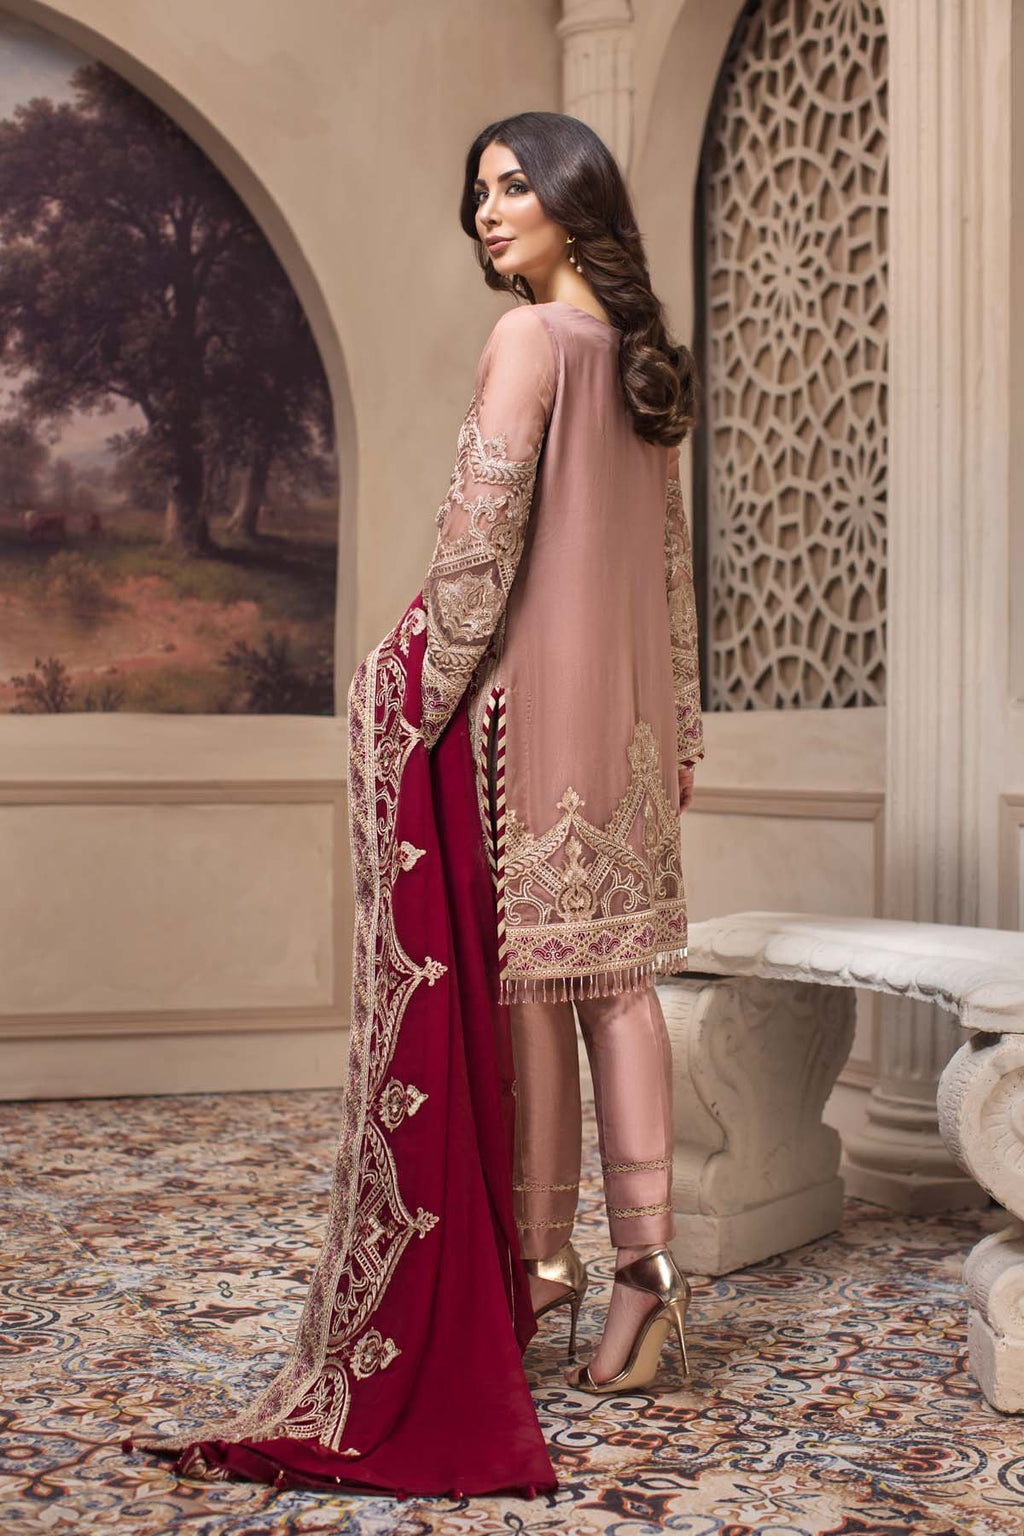 b74d538939 Jazmin SHAHNAMEH 2019 suit Cyra - Embroidered rusty pink chiffon shirt,  silk trouser and embroidered